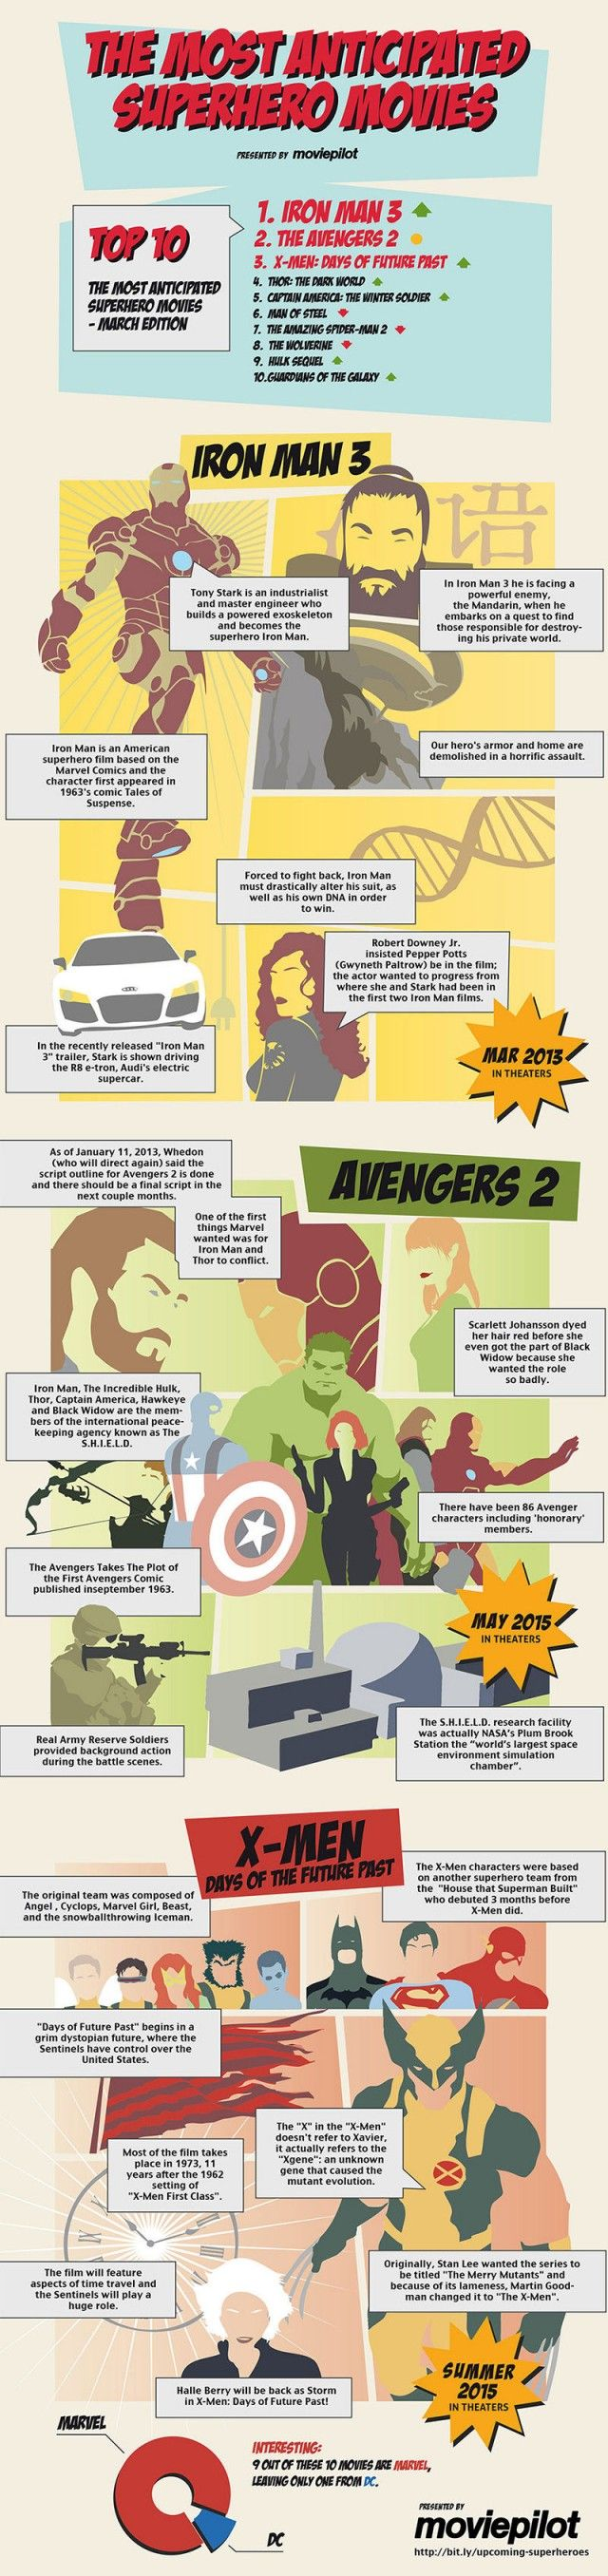 The Most-Anticipated Superhero Movies [Infographic]